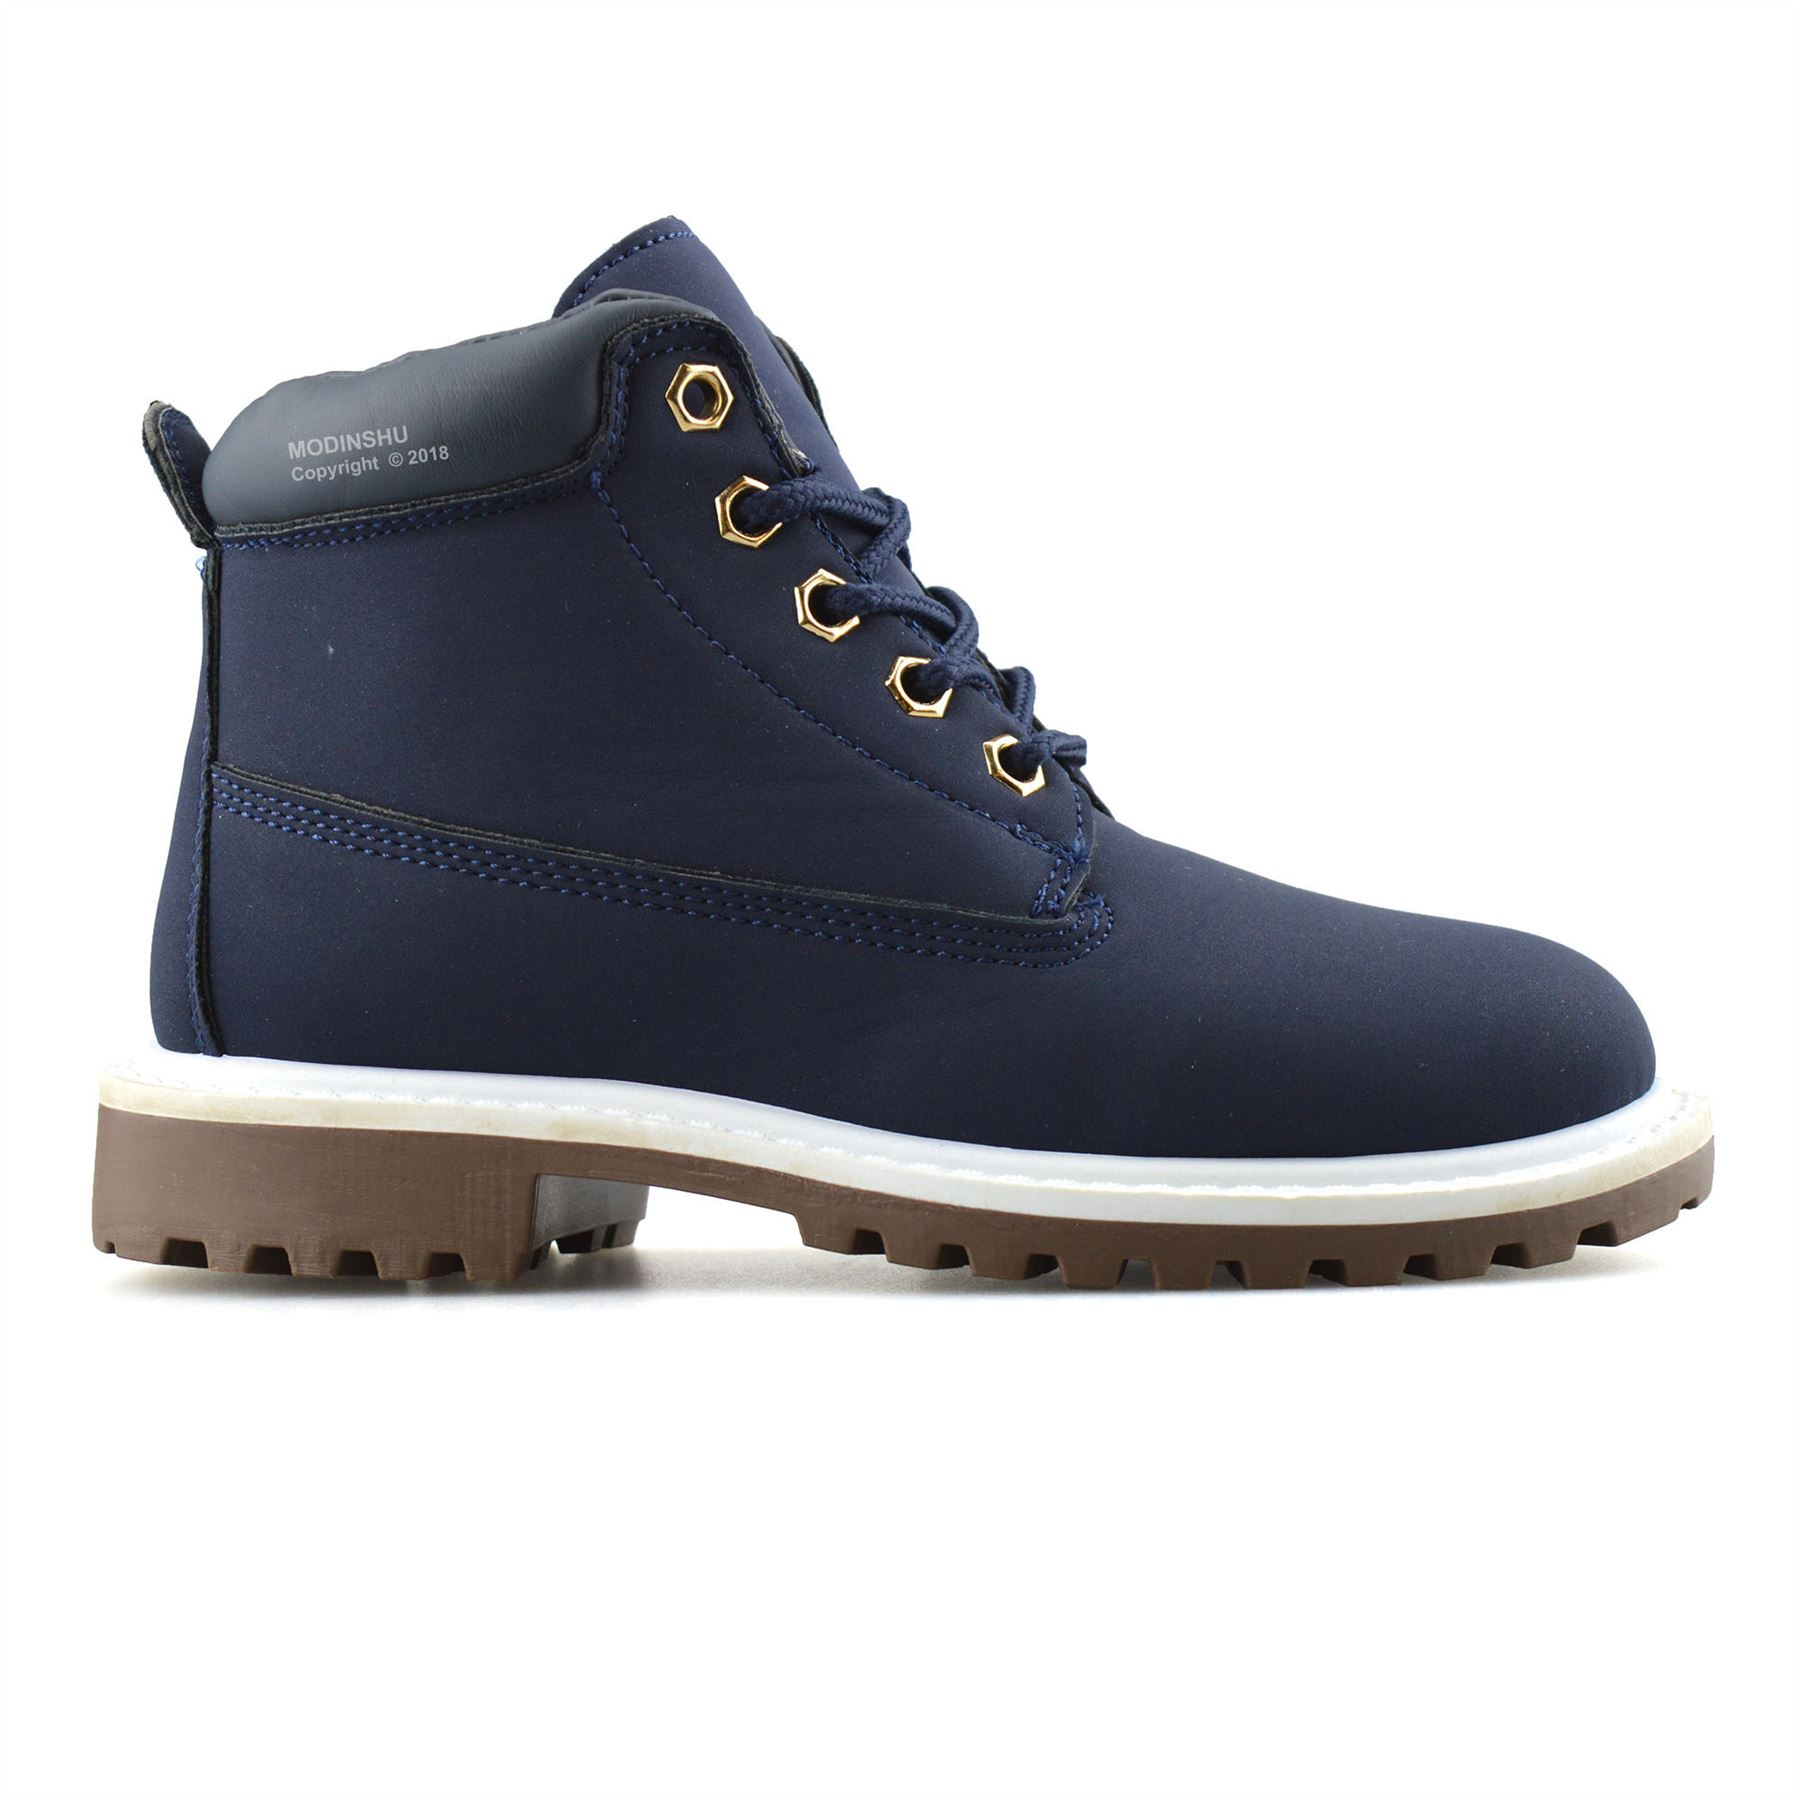 Boys-Kids-New-Casual-Zip-Lace-Up-Winter-Walking-Ankle-Boots-Trainers-Shoes-Size thumbnail 13